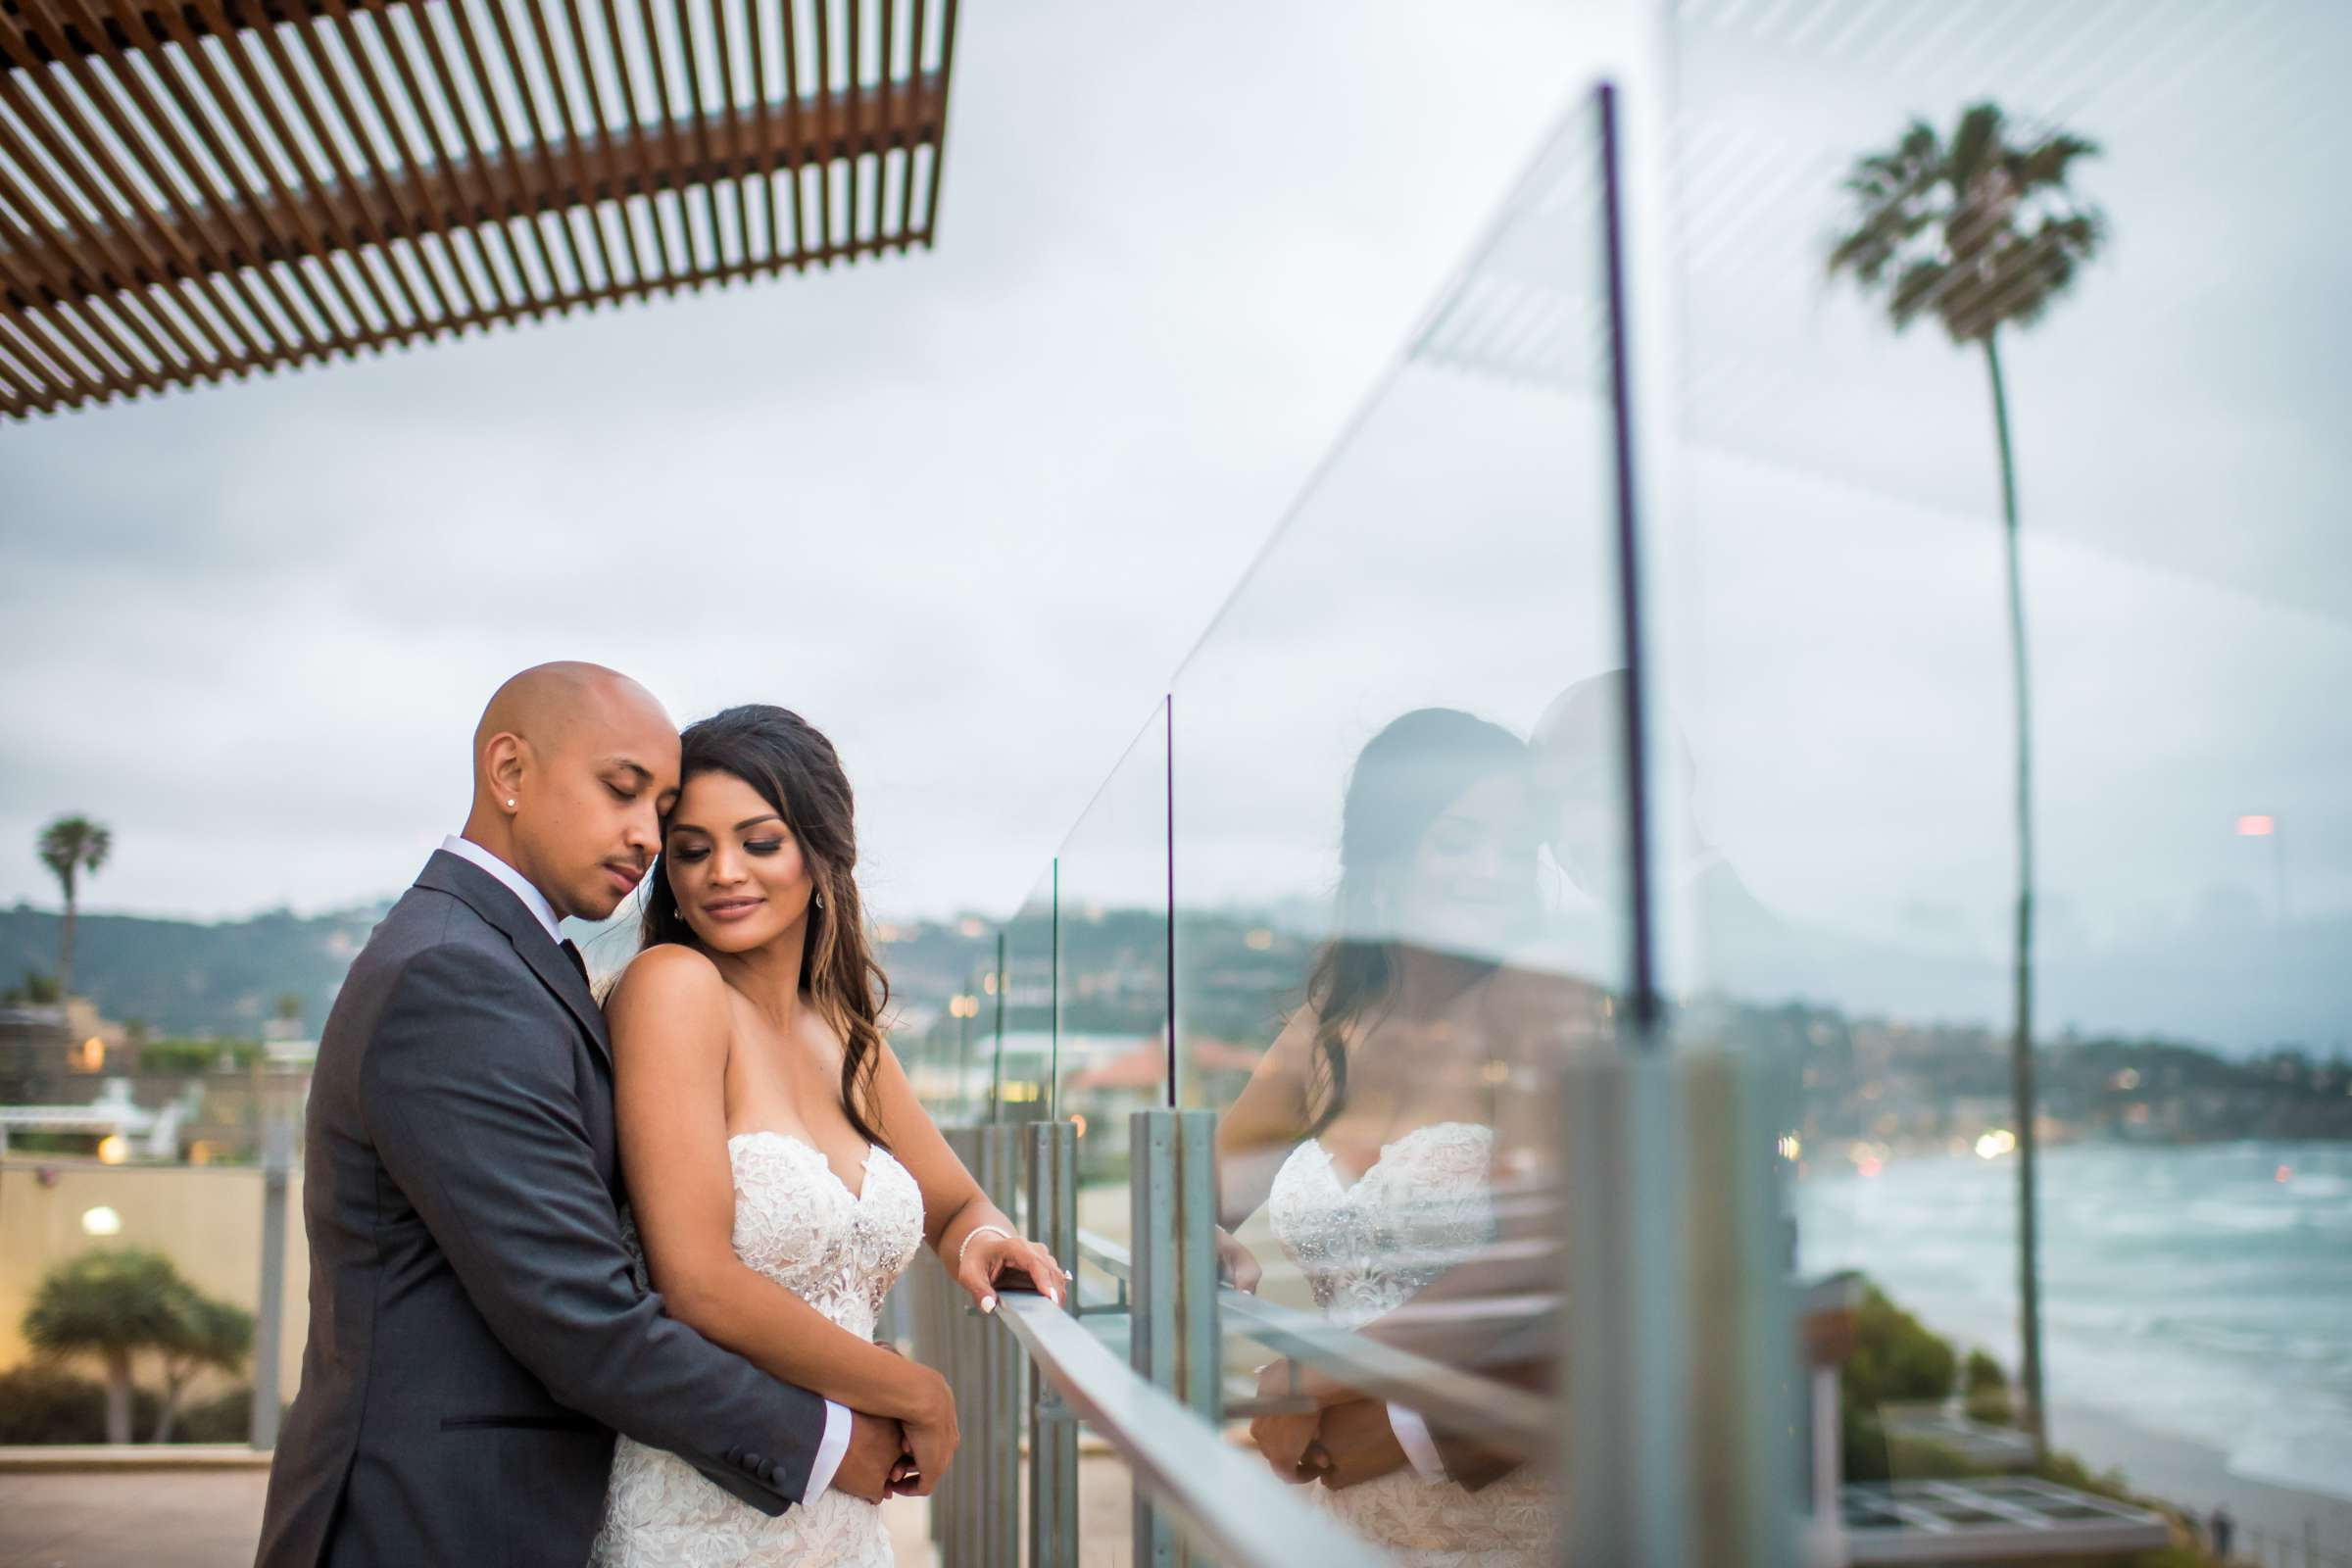 Scripps Seaside Forum Wedding coordinated by Lavish Weddings, Cindy and Justin Wedding Photo #381875 by True Photography